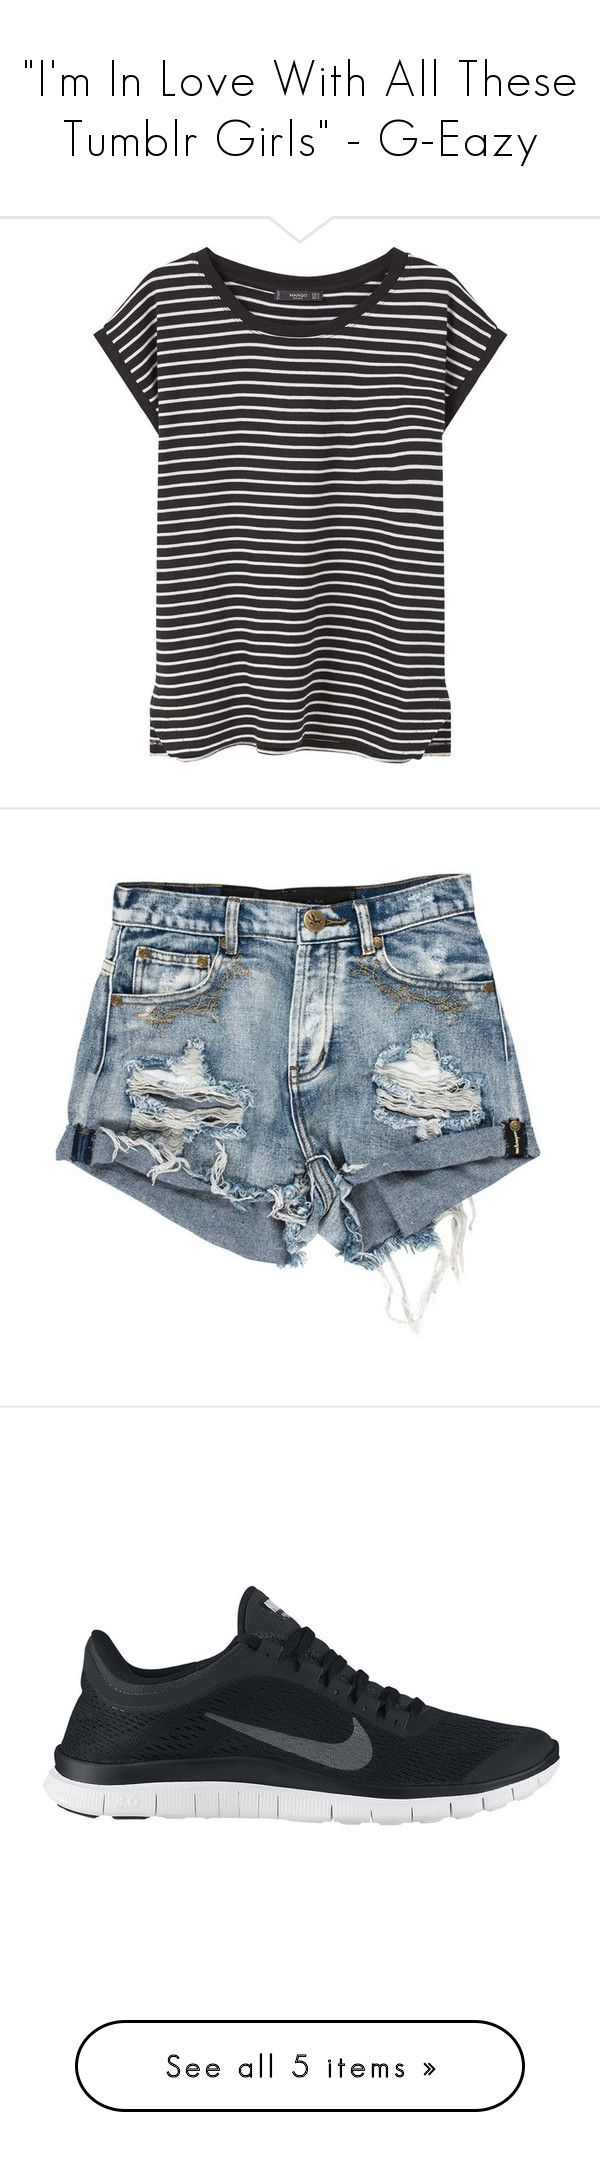 """""""""""I'm In Love With All These Tumblr Girls"""" - G-Eazy"""" by meredith-gomes ❤ liked on Polyvore featuring shorts, sneakers, Tshirt, tops, t-shirts, shirts, tees, blusas, short sleeve t shirts and striped shirts"""